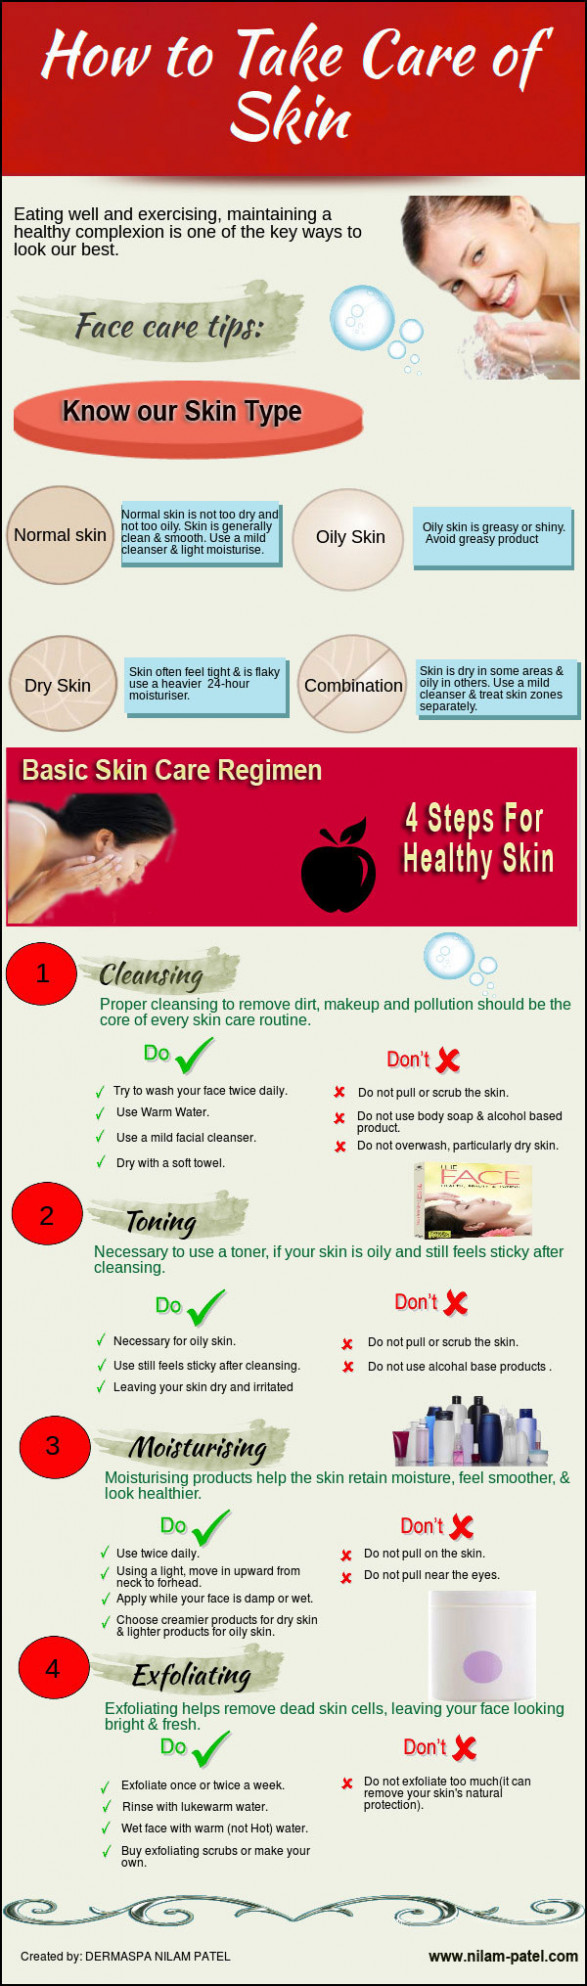 How to Take Care of Skin